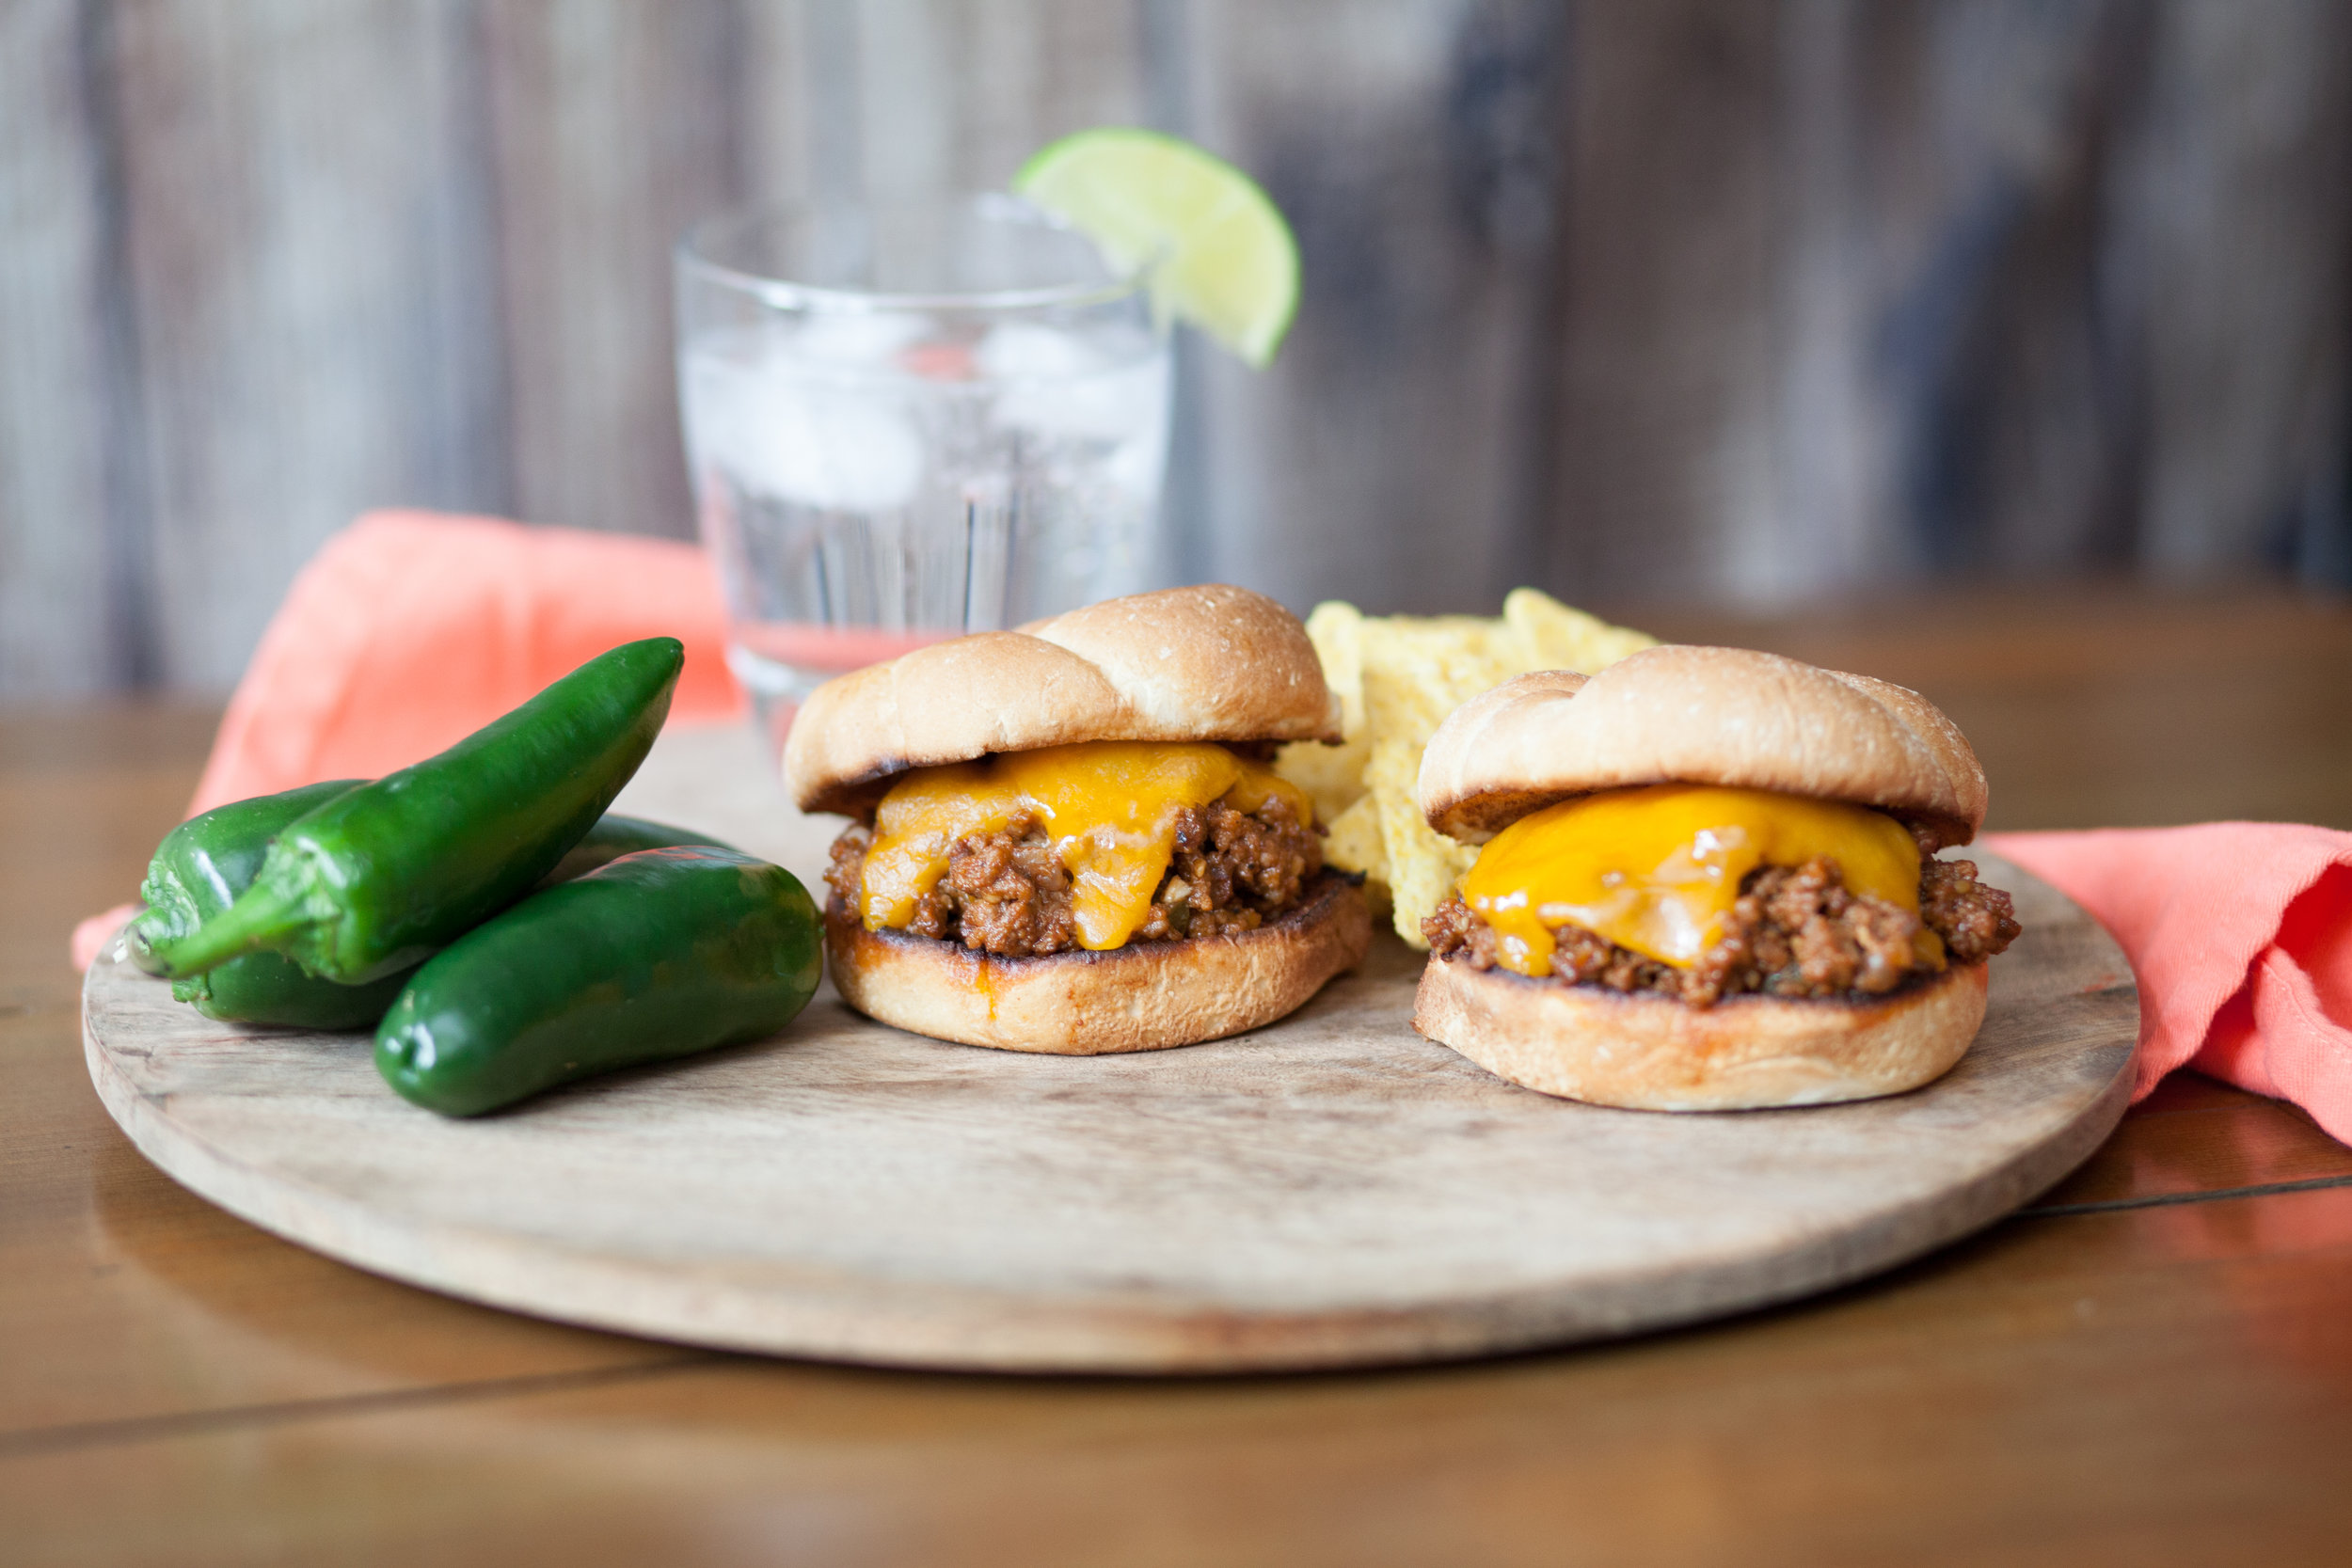 3. Sloppy Chori-Joes - Up your Sloppy Joe game by mixing chorizo and jalapeño in your traditional mix for a spicier, mouth-watering addition to your tailgating spread.